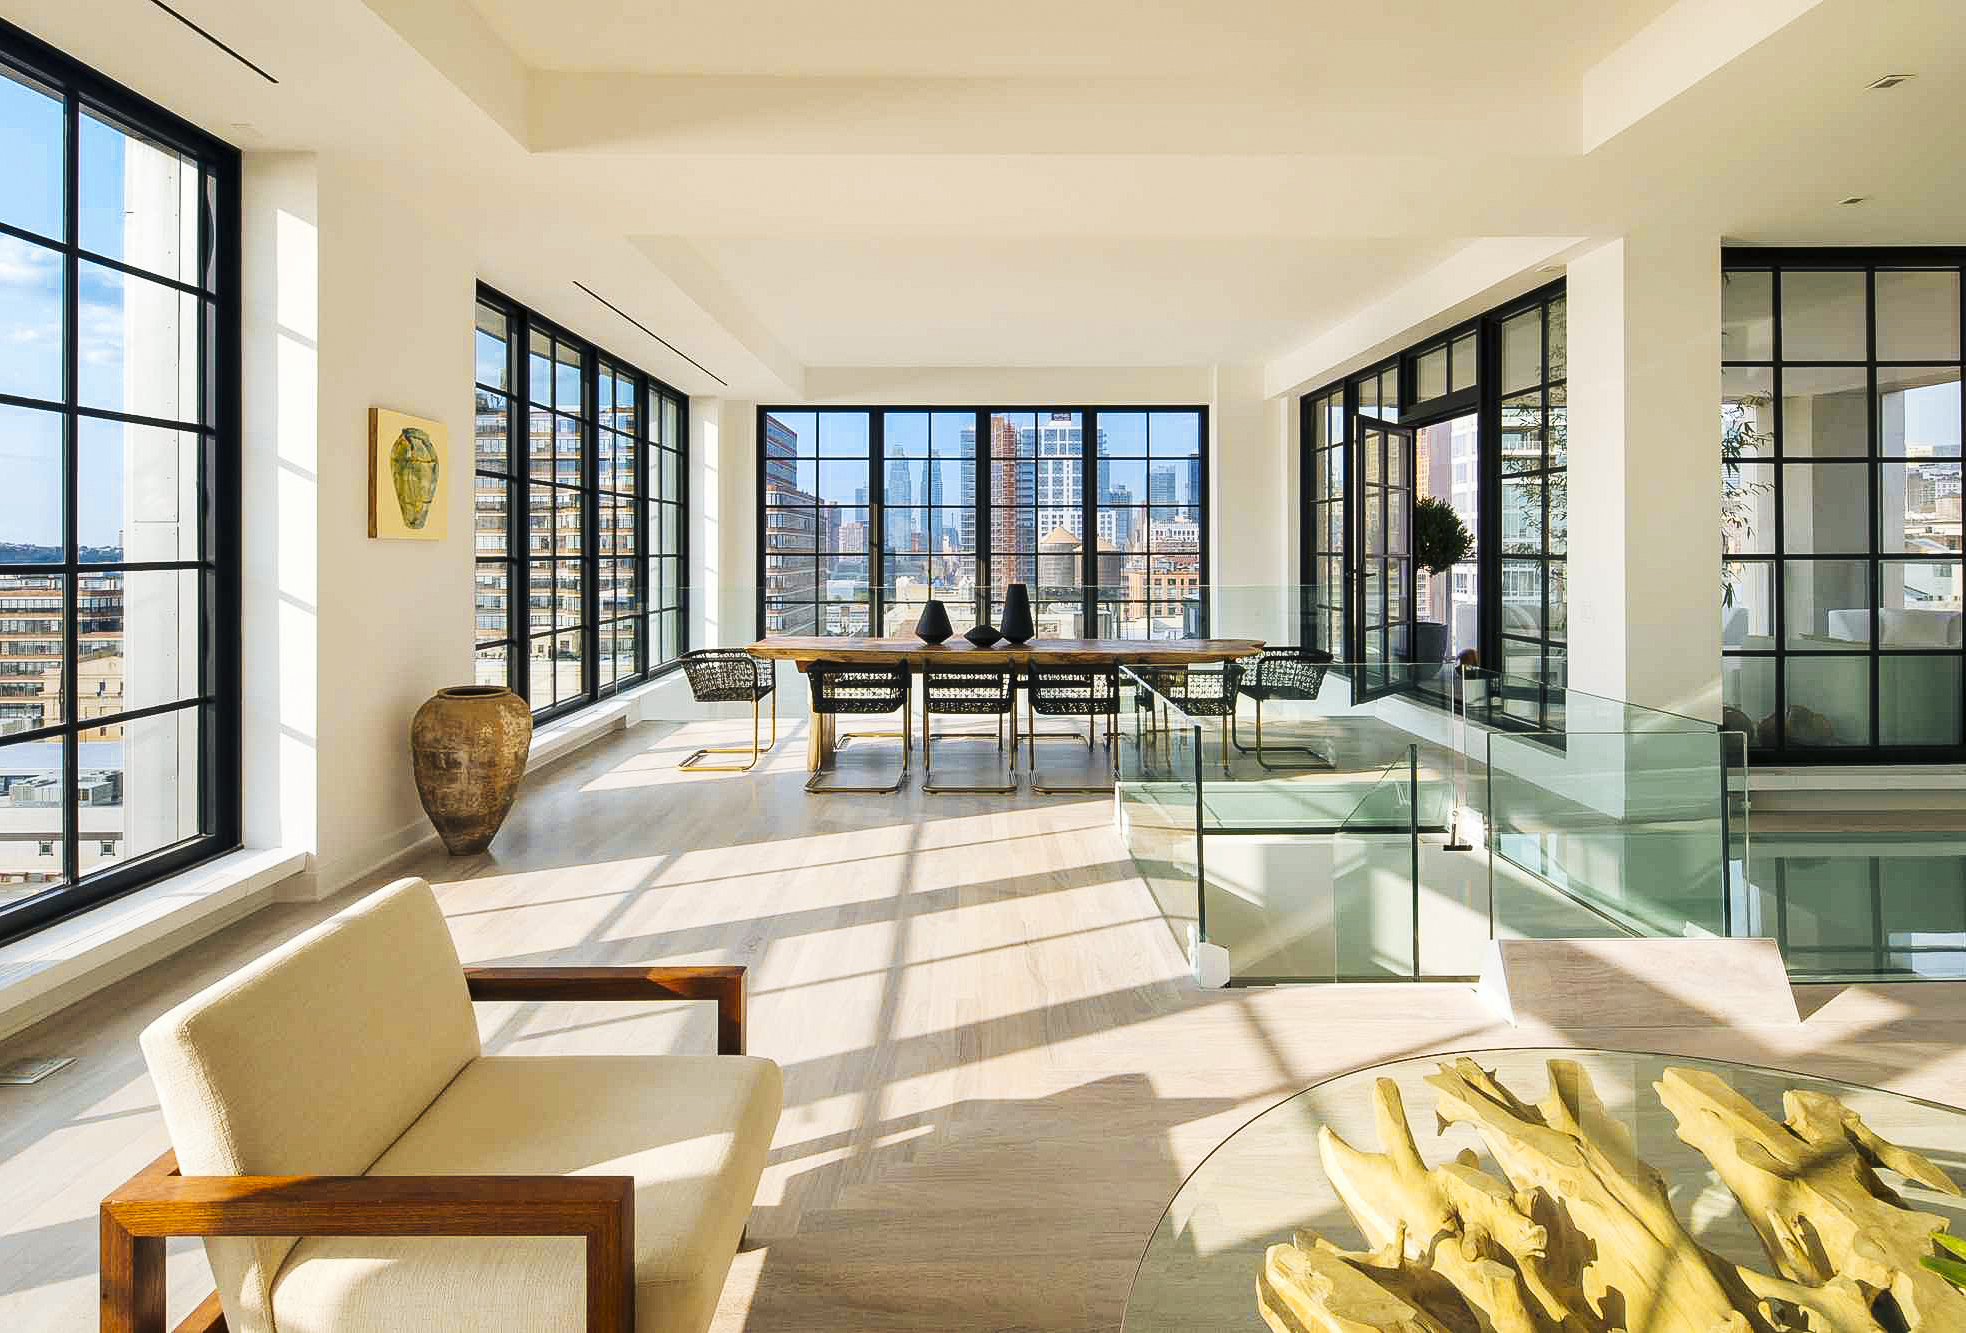 5 Penthouses You Would Sell Your Soul to Live In | HuffPost | 1966 x 1333 jpeg 1428kB